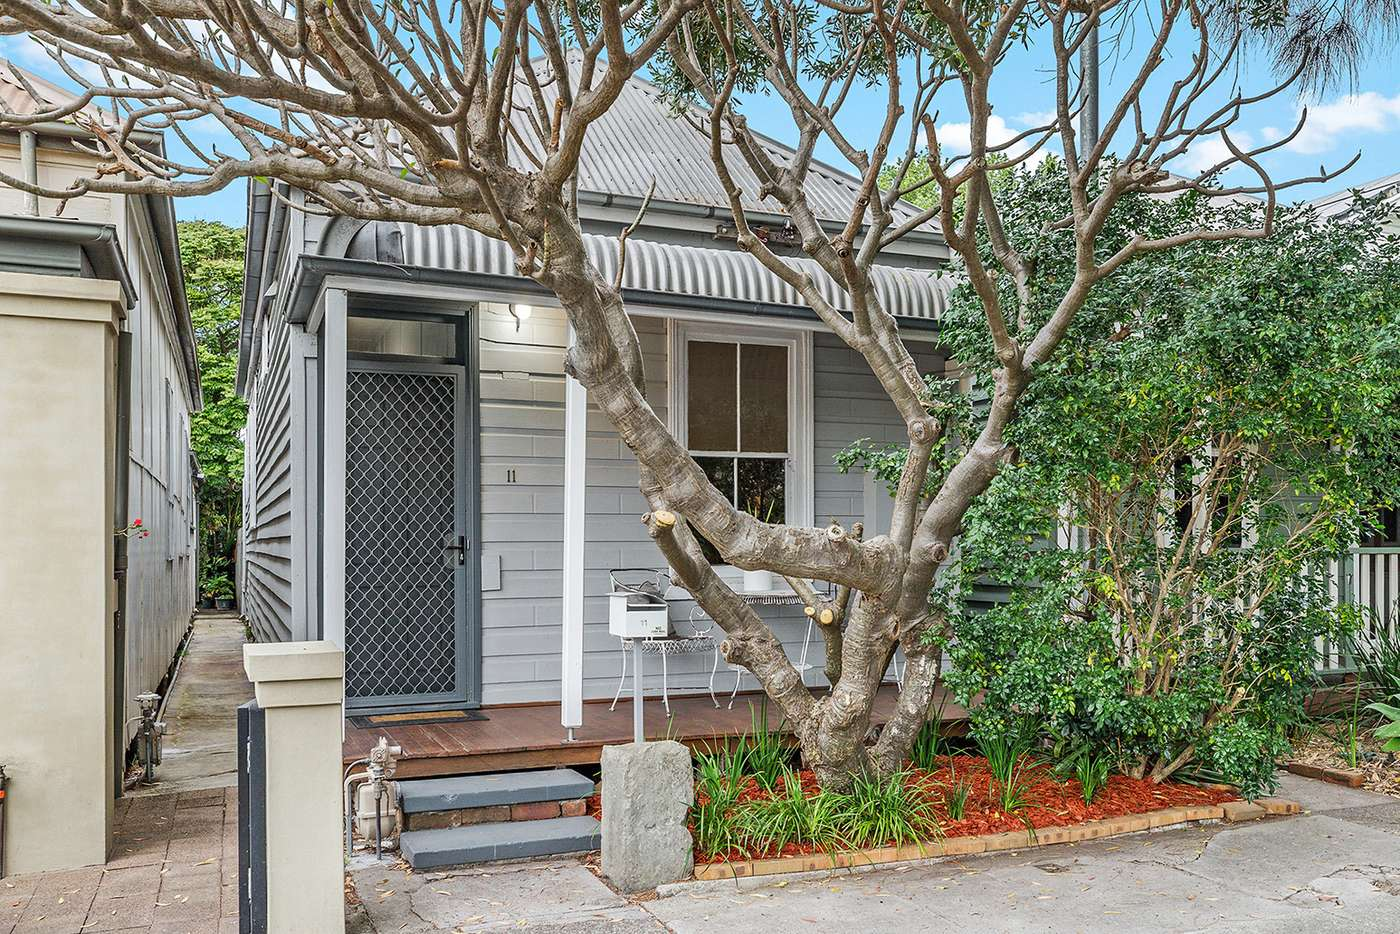 Main view of Homely house listing, 11 Elcho Street, Hamilton NSW 2303